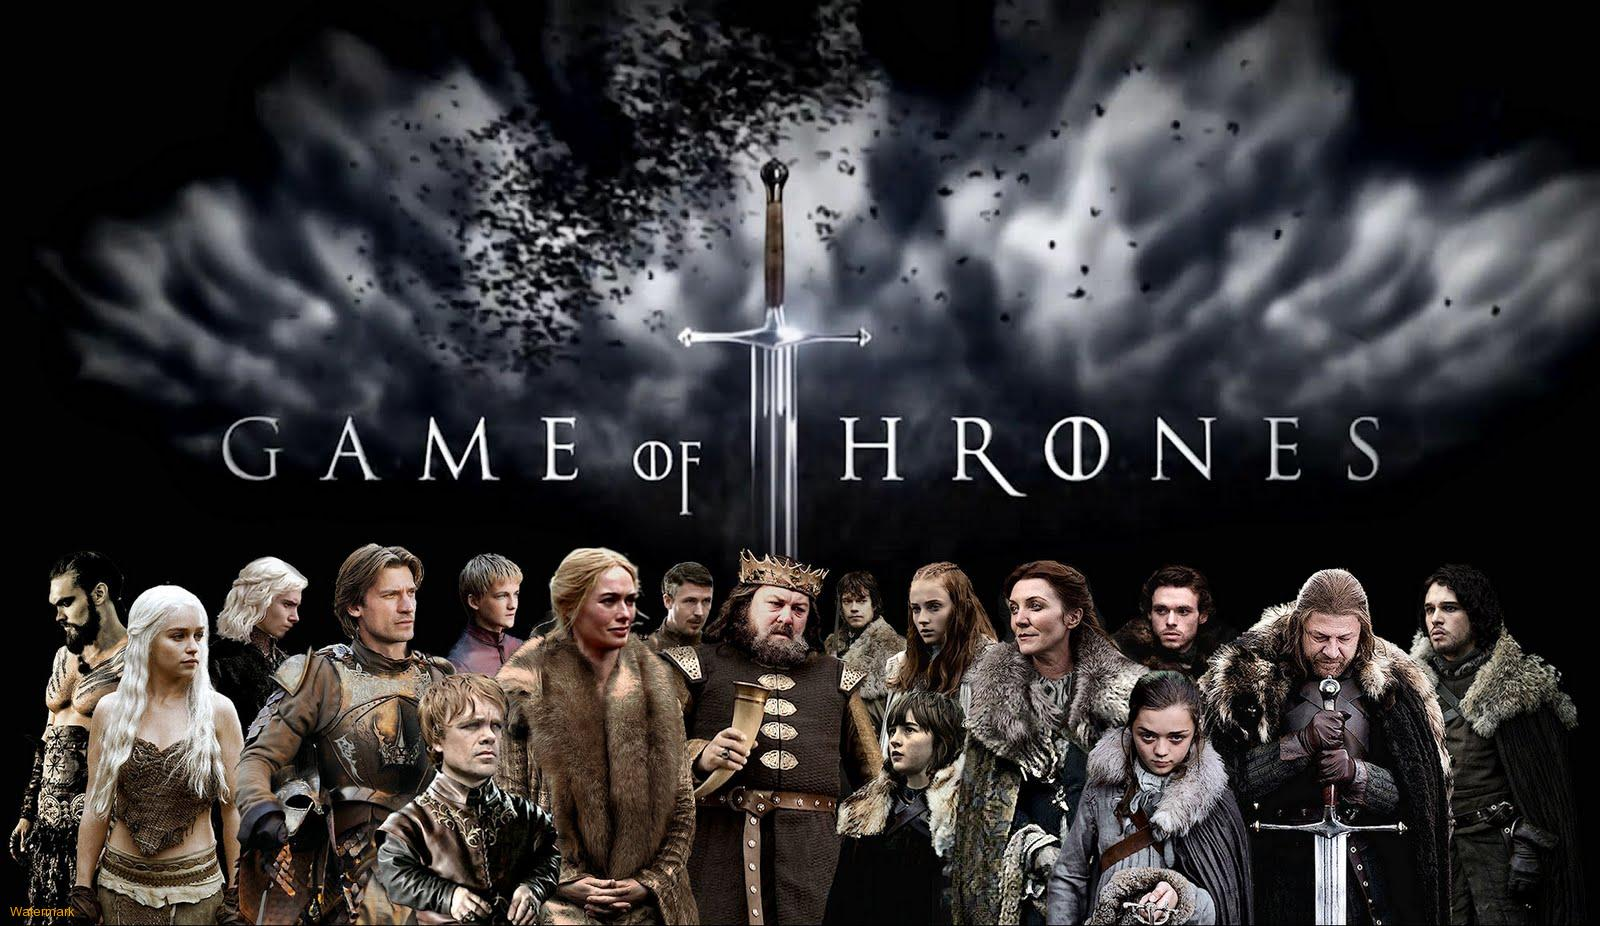 http://2.bp.blogspot.com/-3ezHUrVga9U/TrIYELkF89I/AAAAAAAAARU/p8SSu473BYk/s1600/Game-of-Thrones-Cast-Wallpaper-1.jpeg